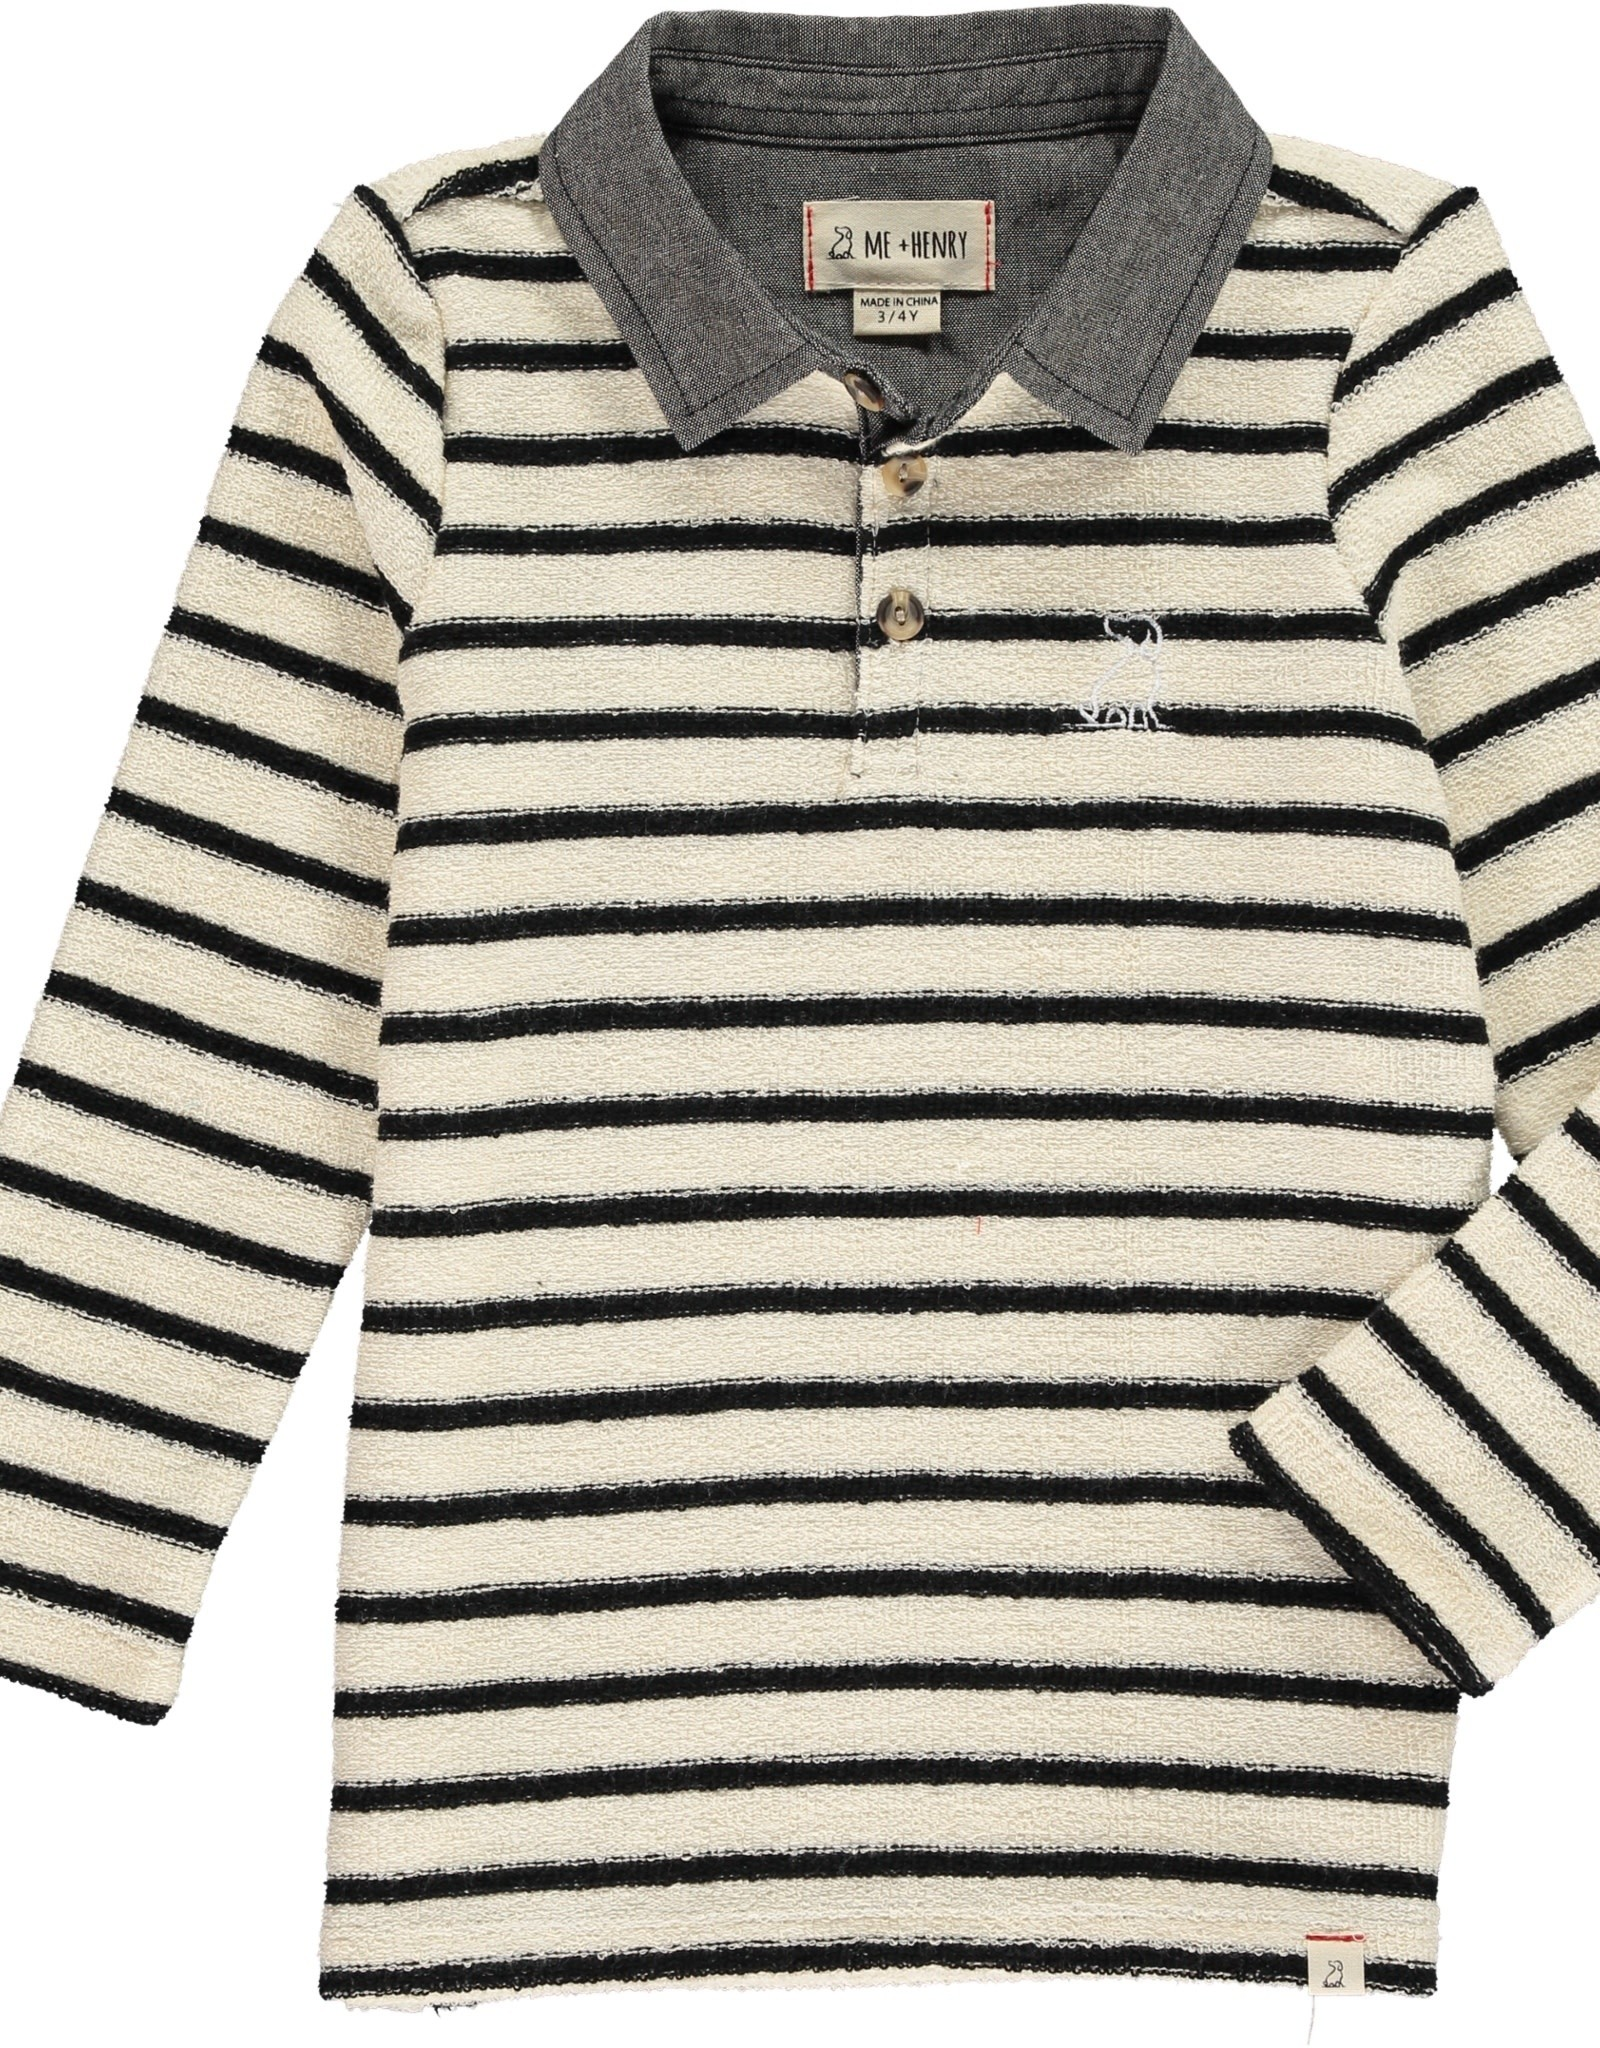 Navy/Cream stripe rugby